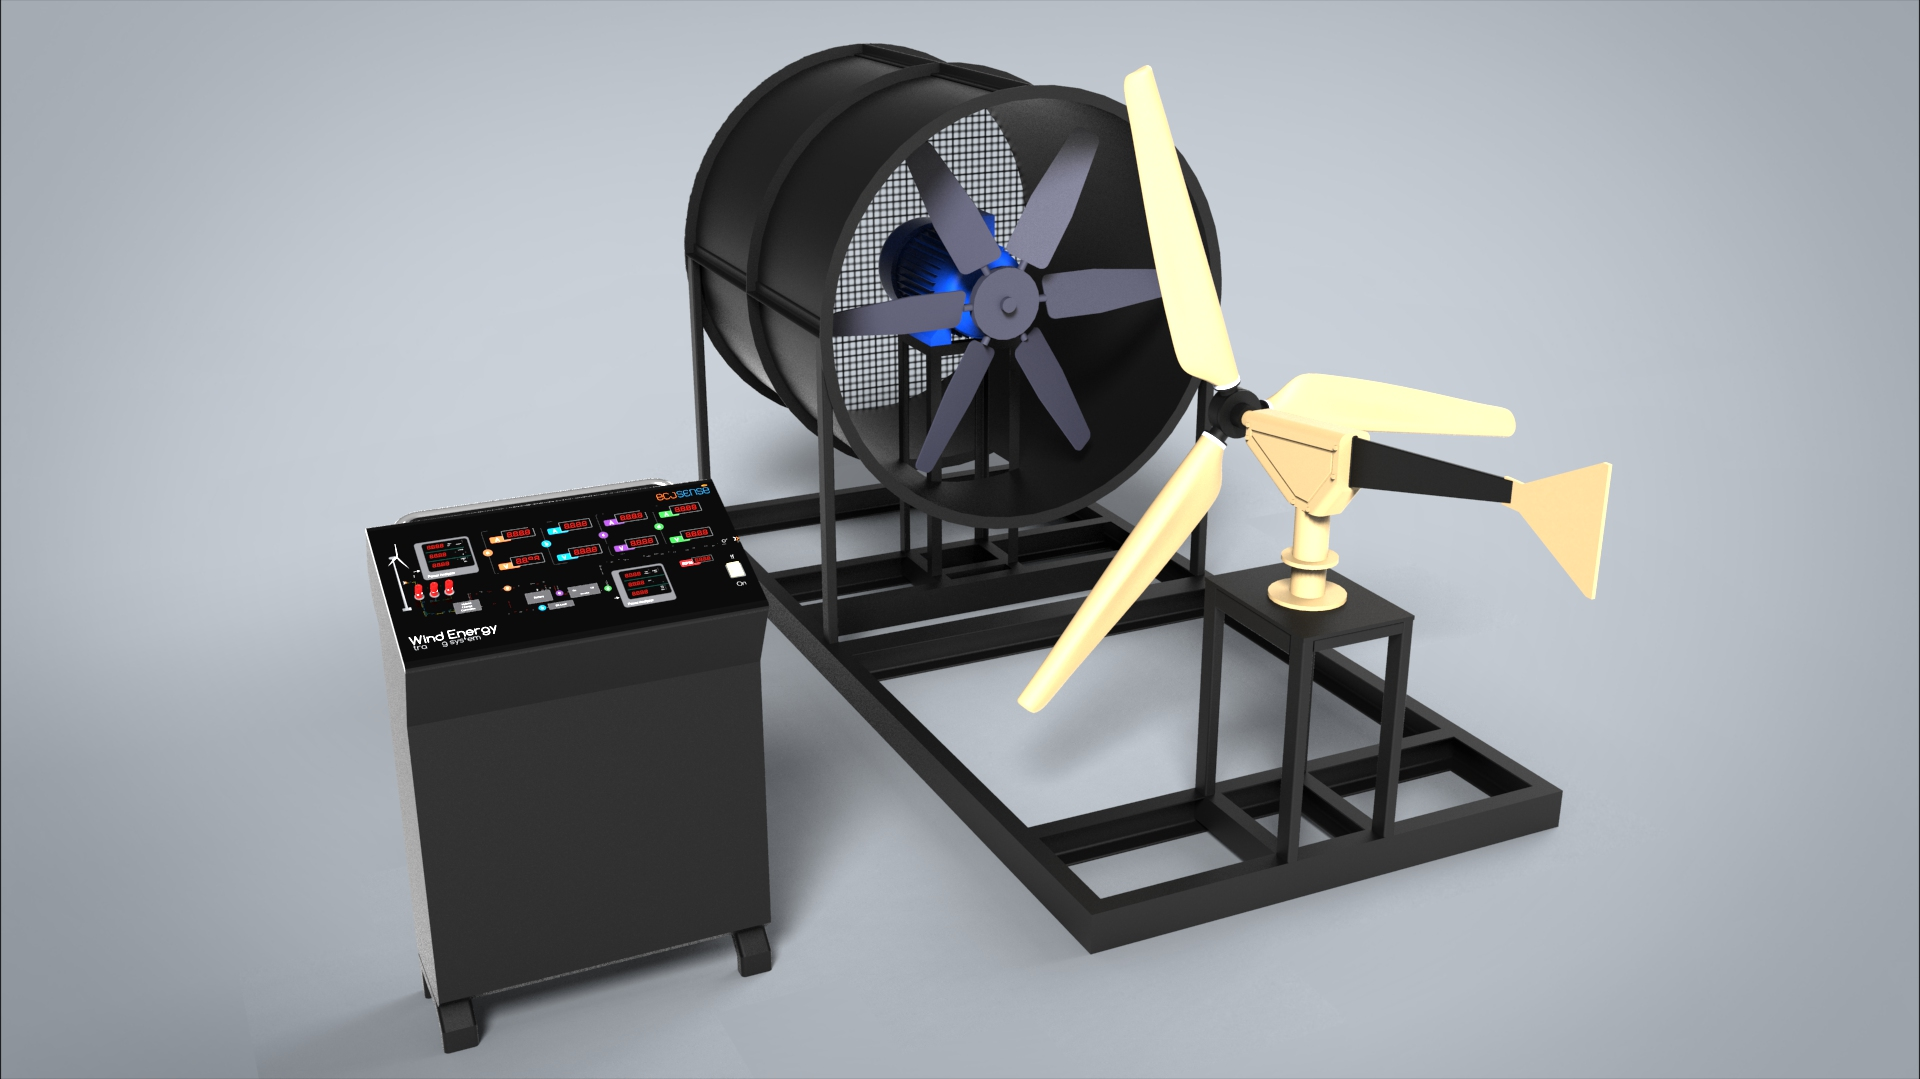 Wind Energy Training System